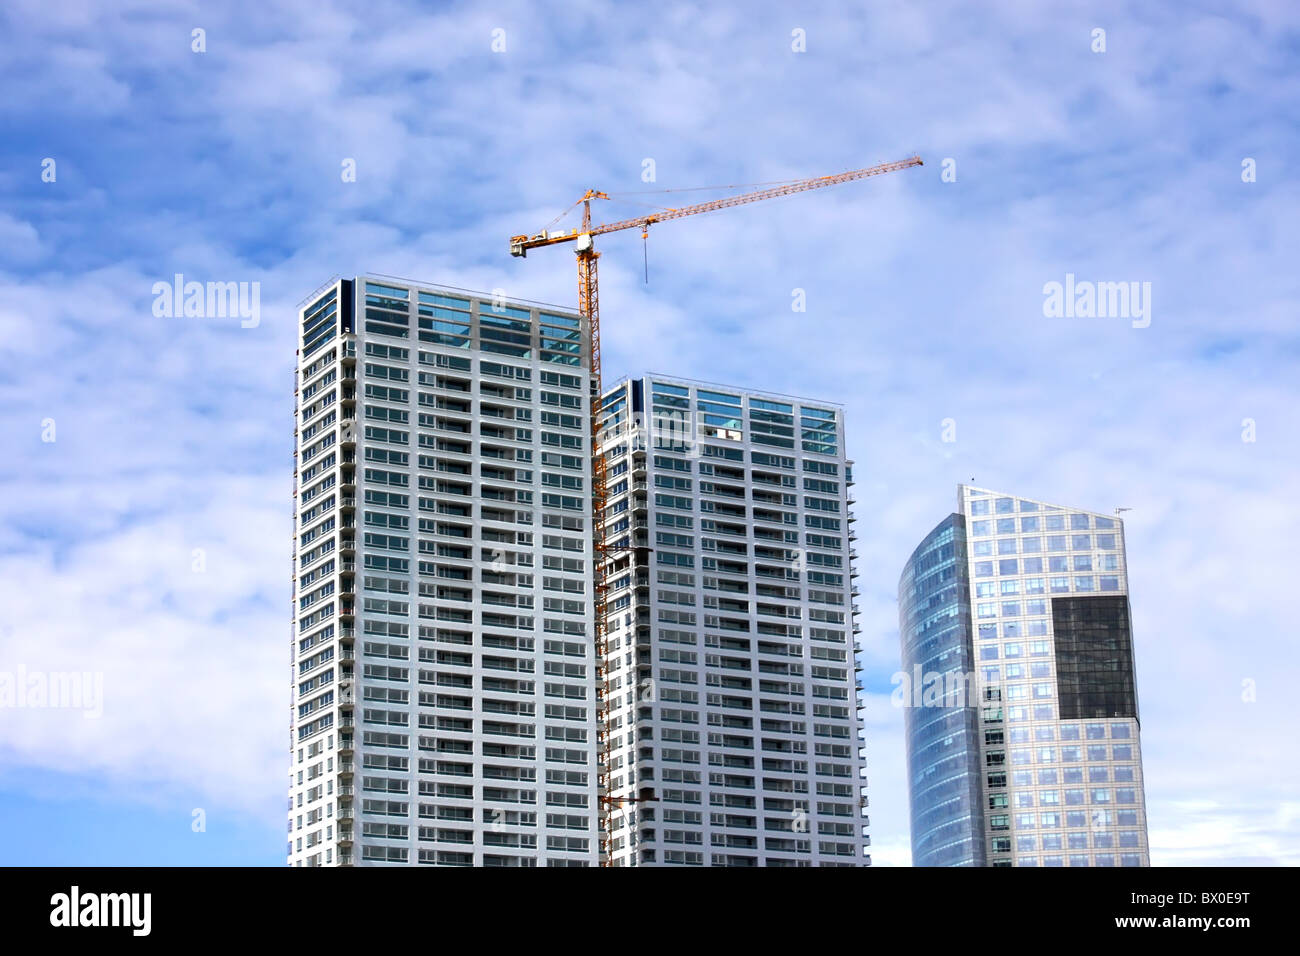 Skyscrapers in Buenos Aires, Argentina. - Stock Image